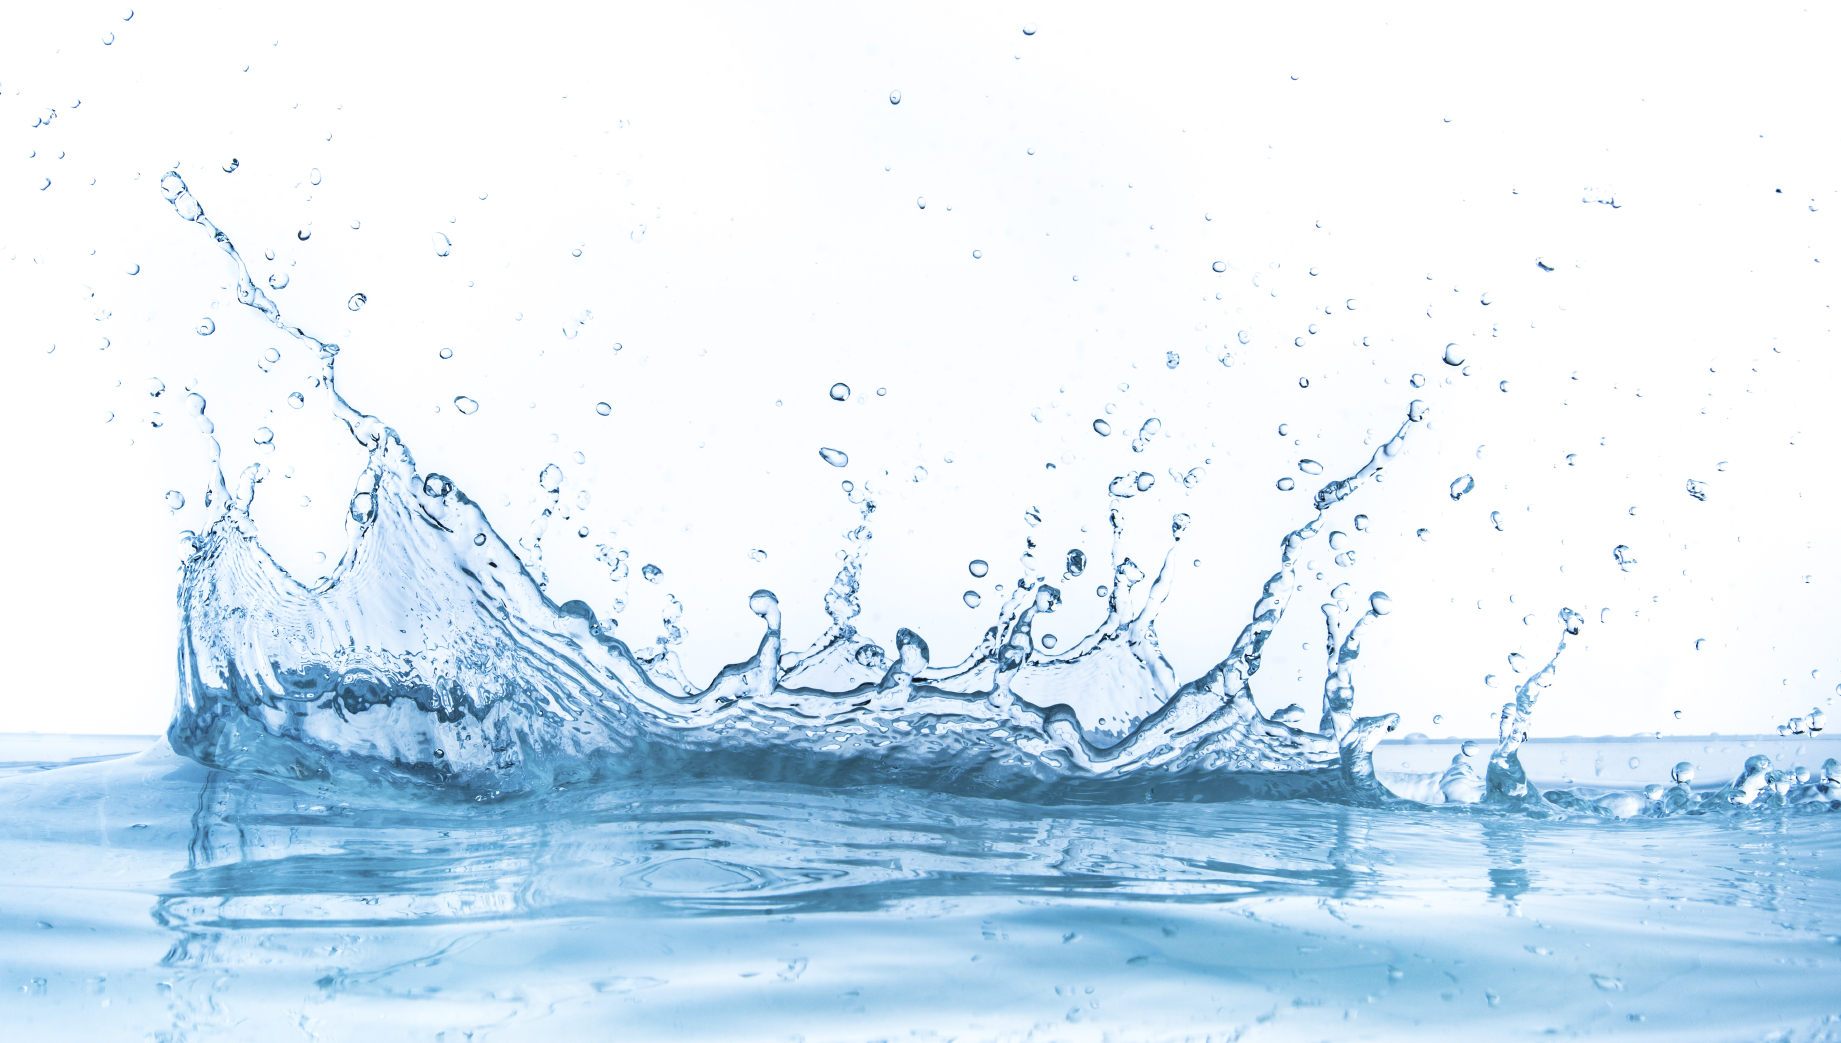 water hydration and health These are the most common myths about hydration, such as that drinking water helps curb your appetite and that it's easy to mistake thirst for hunger.